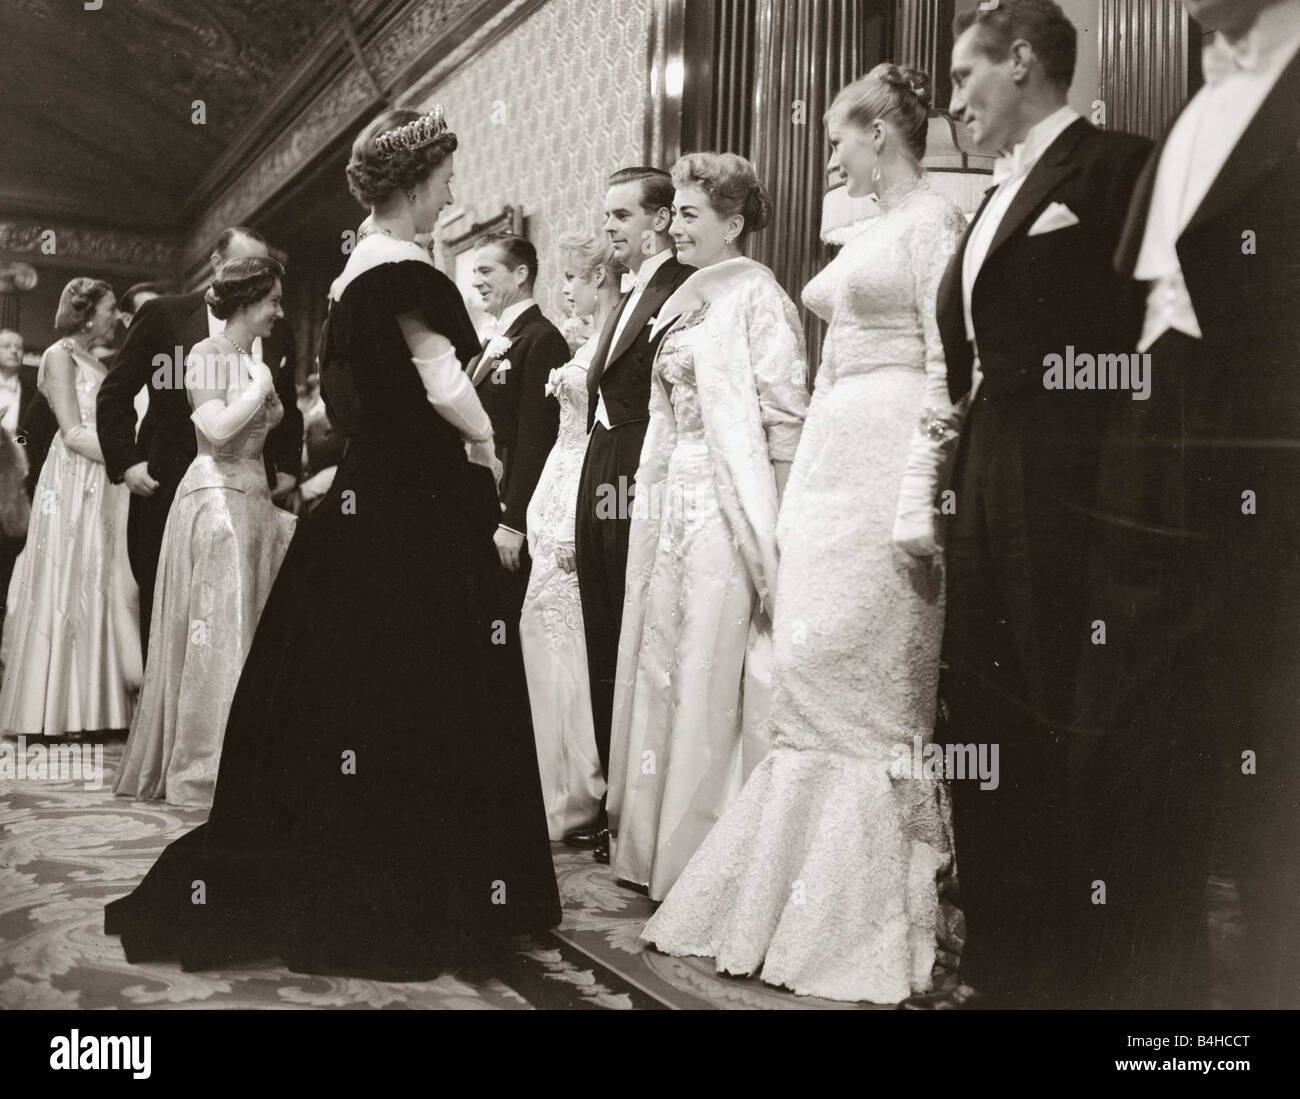 Actress Joan Crawford at the Royal Film Show talking to Her majesty Queen Elibazeth II of England October 1956 - Stock Image